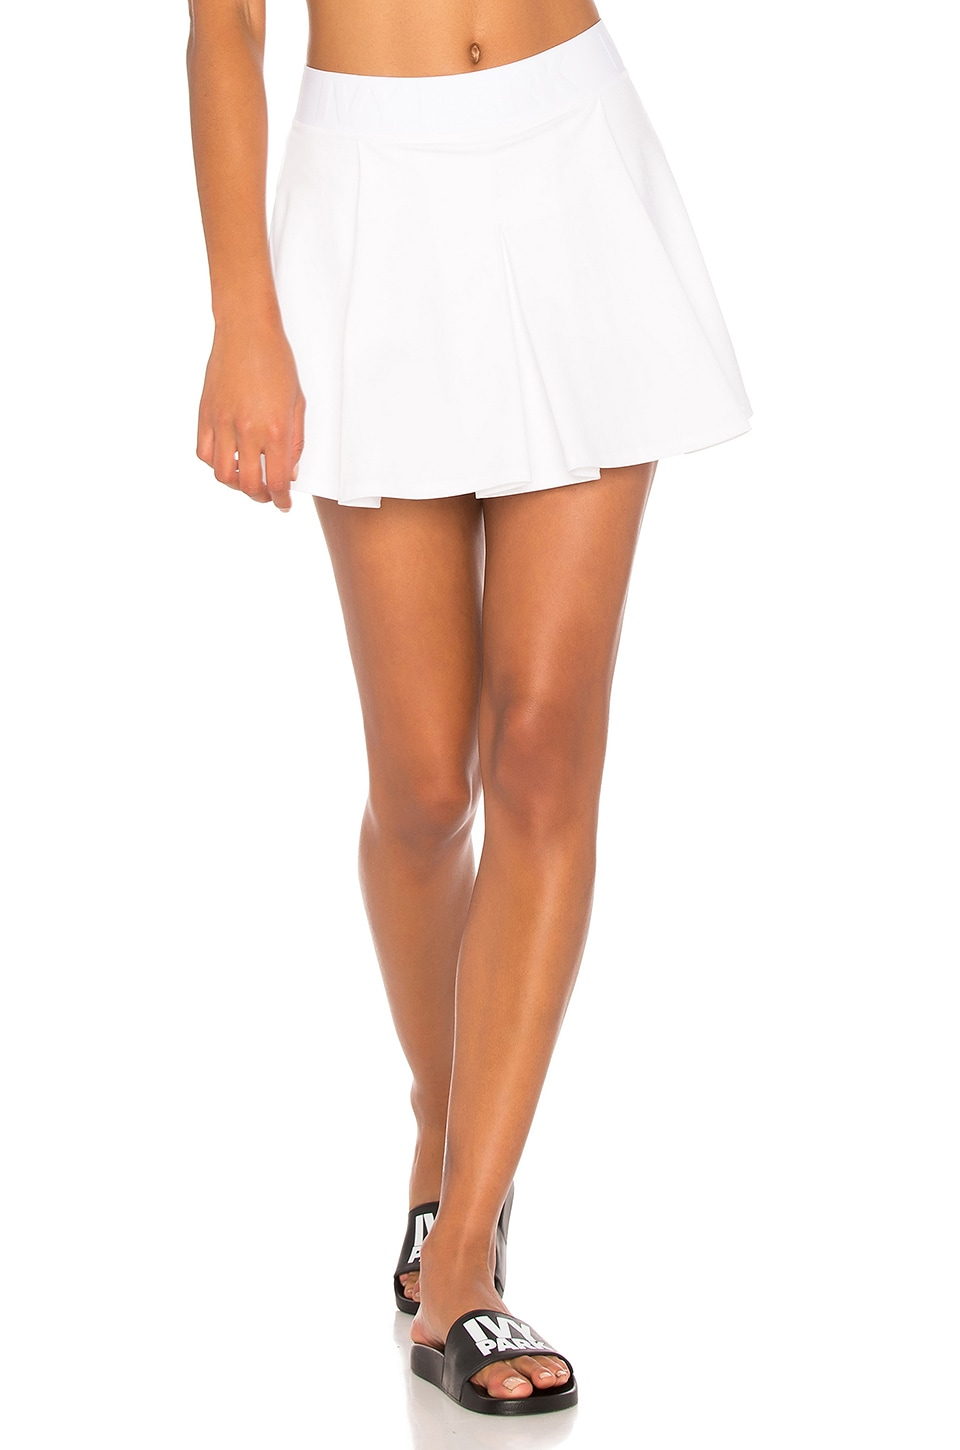 IVY PARK Tennis Skirt in White